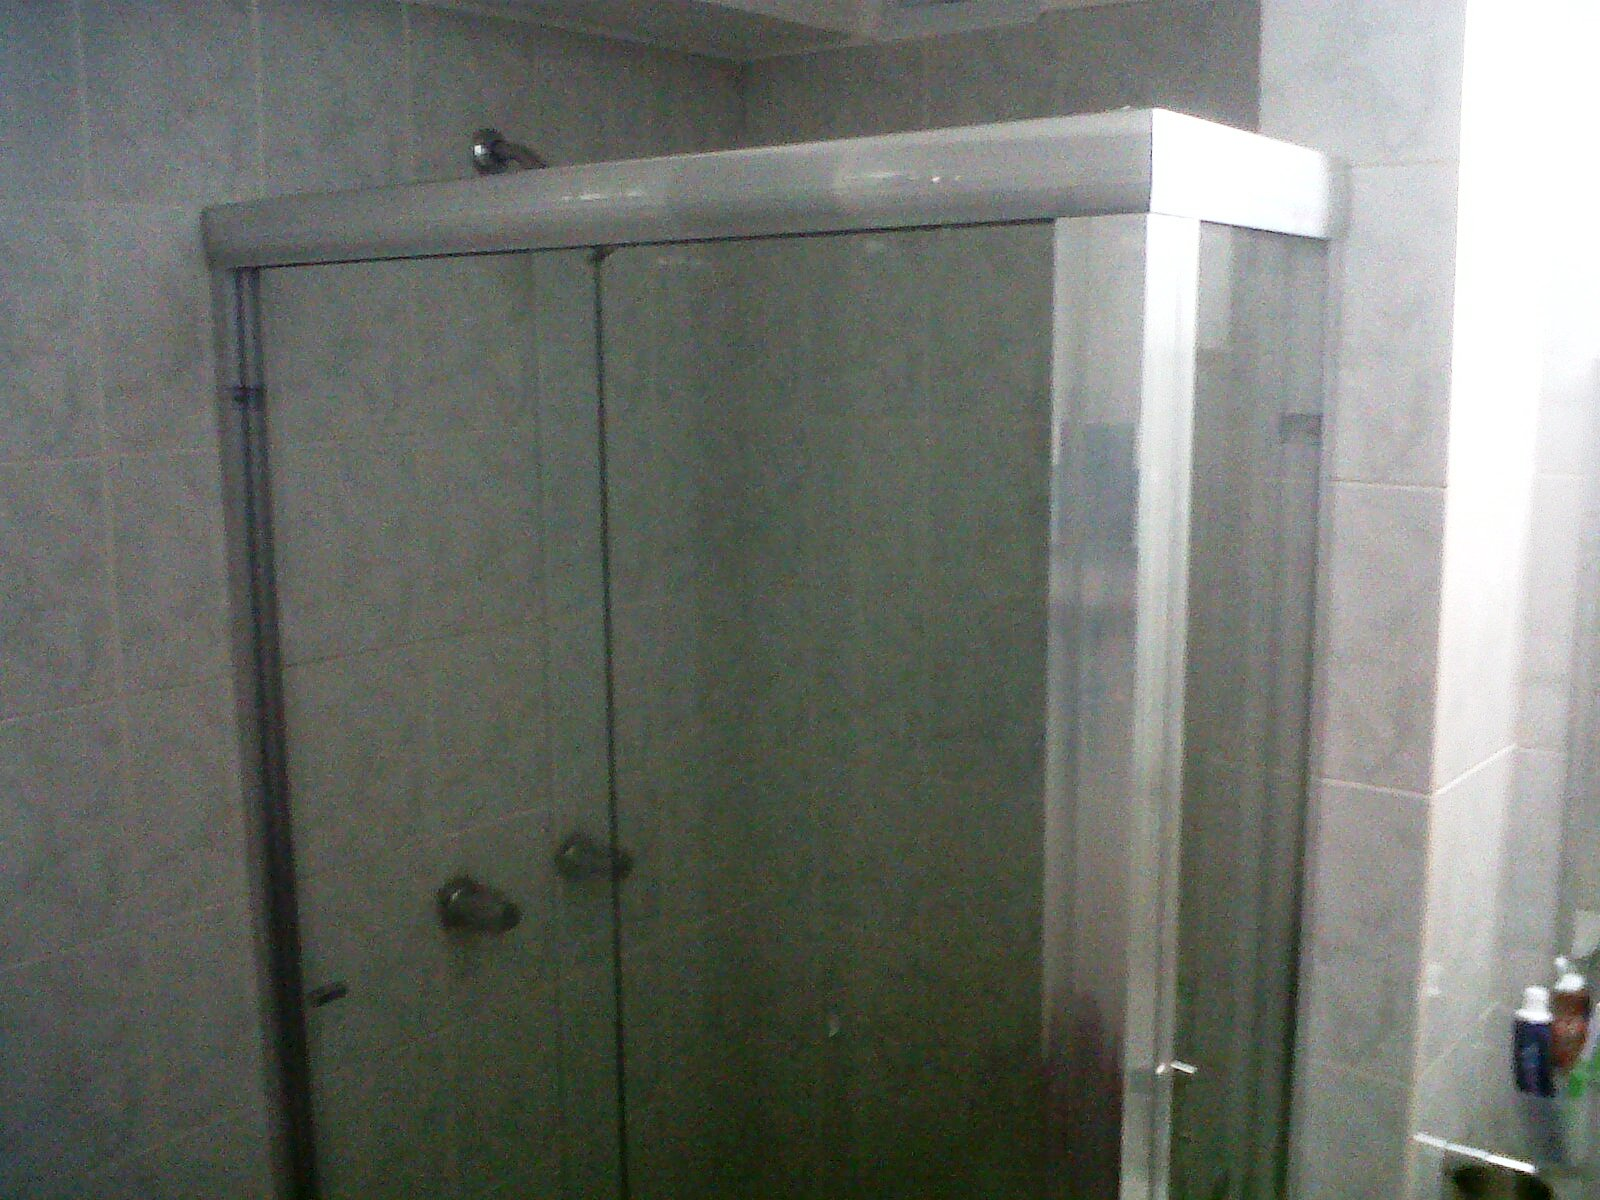 Puertas De Baño En Fibra: request use the form below to delete this puerta de baño corrediza